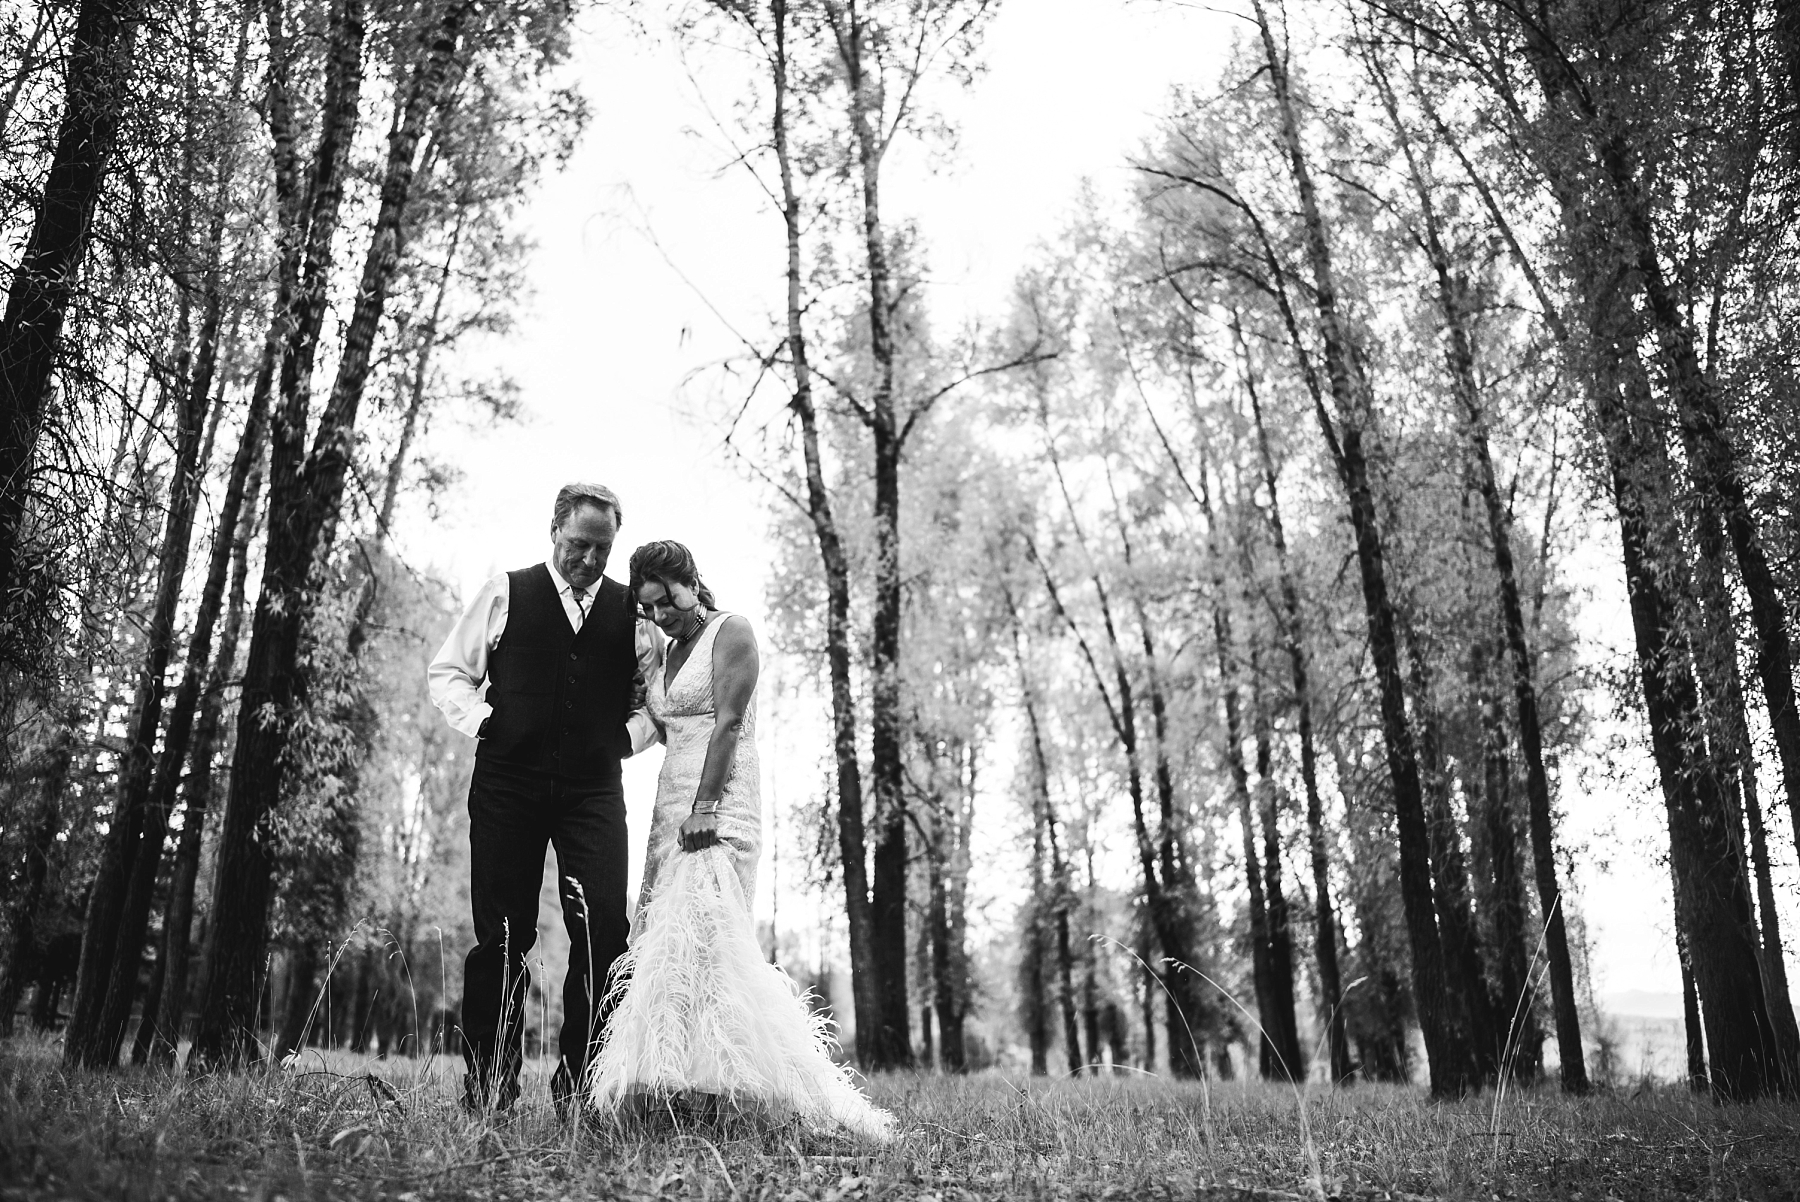 Bride and groom standing in forest